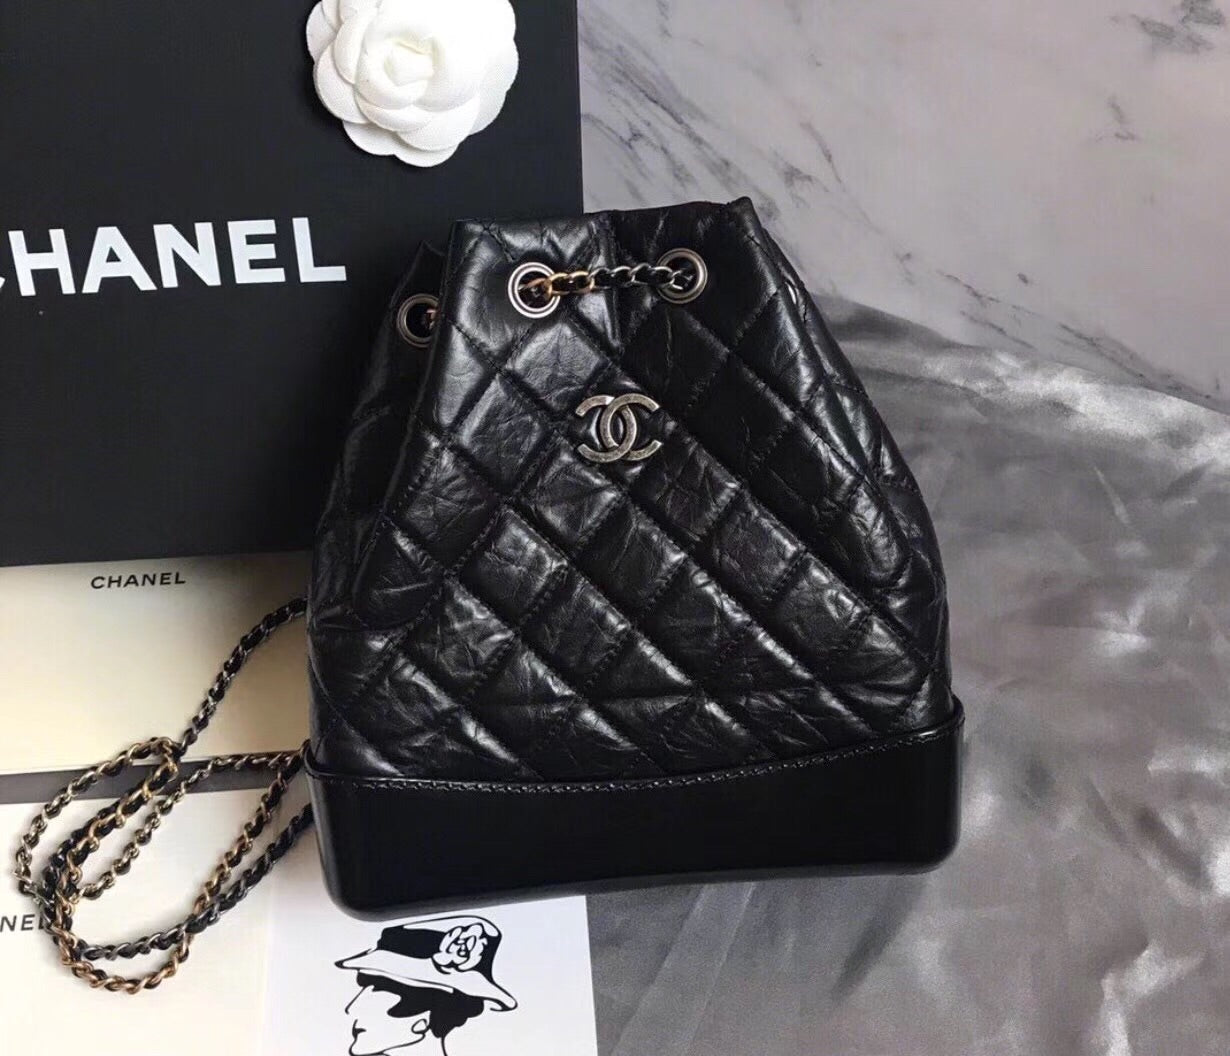 CHANEL GABRIELLE BACKPACK - vlixcogoods